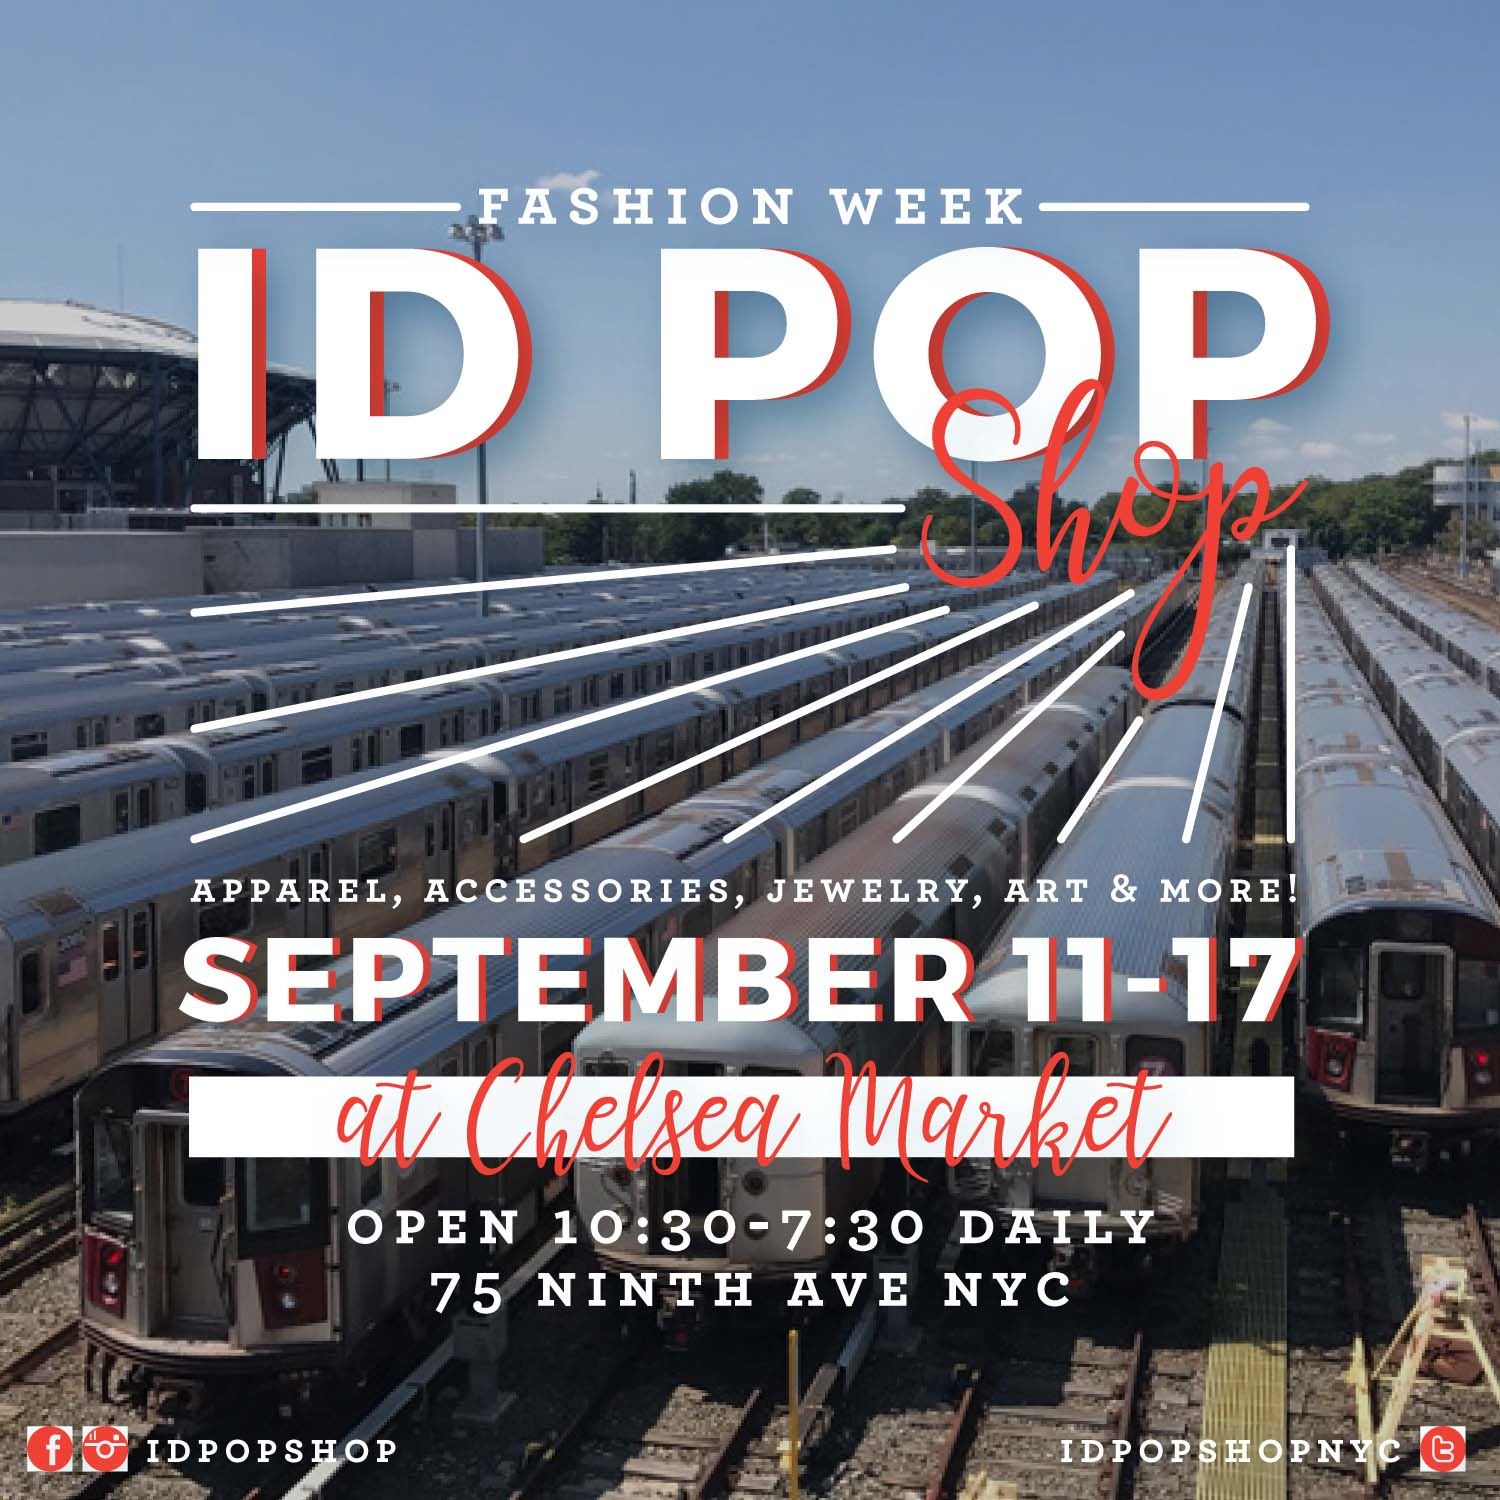 ID POP SHOP AT CHELSEA MARKET 9/11-9/17 OPEN 10:30-7:30